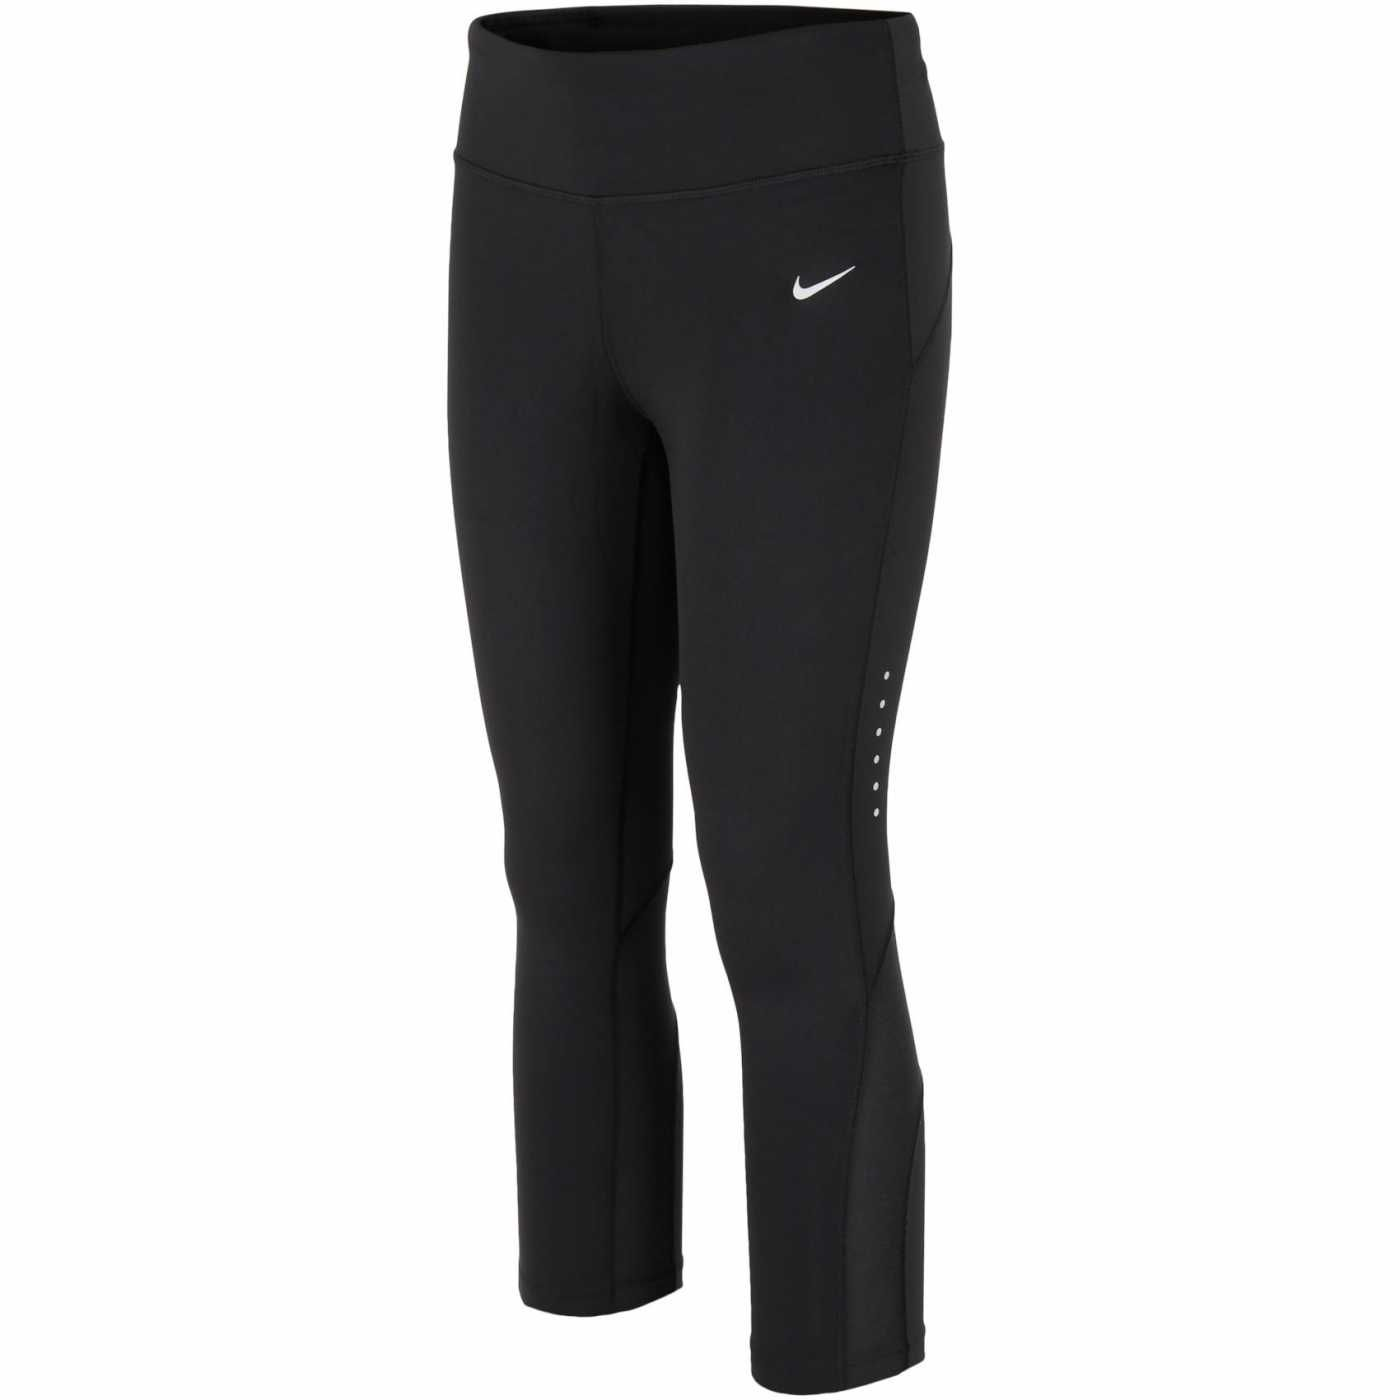 24488362c22 Køb Nike Epic Lux Crop Tights - Dame i Sort online | Running | Nike ...